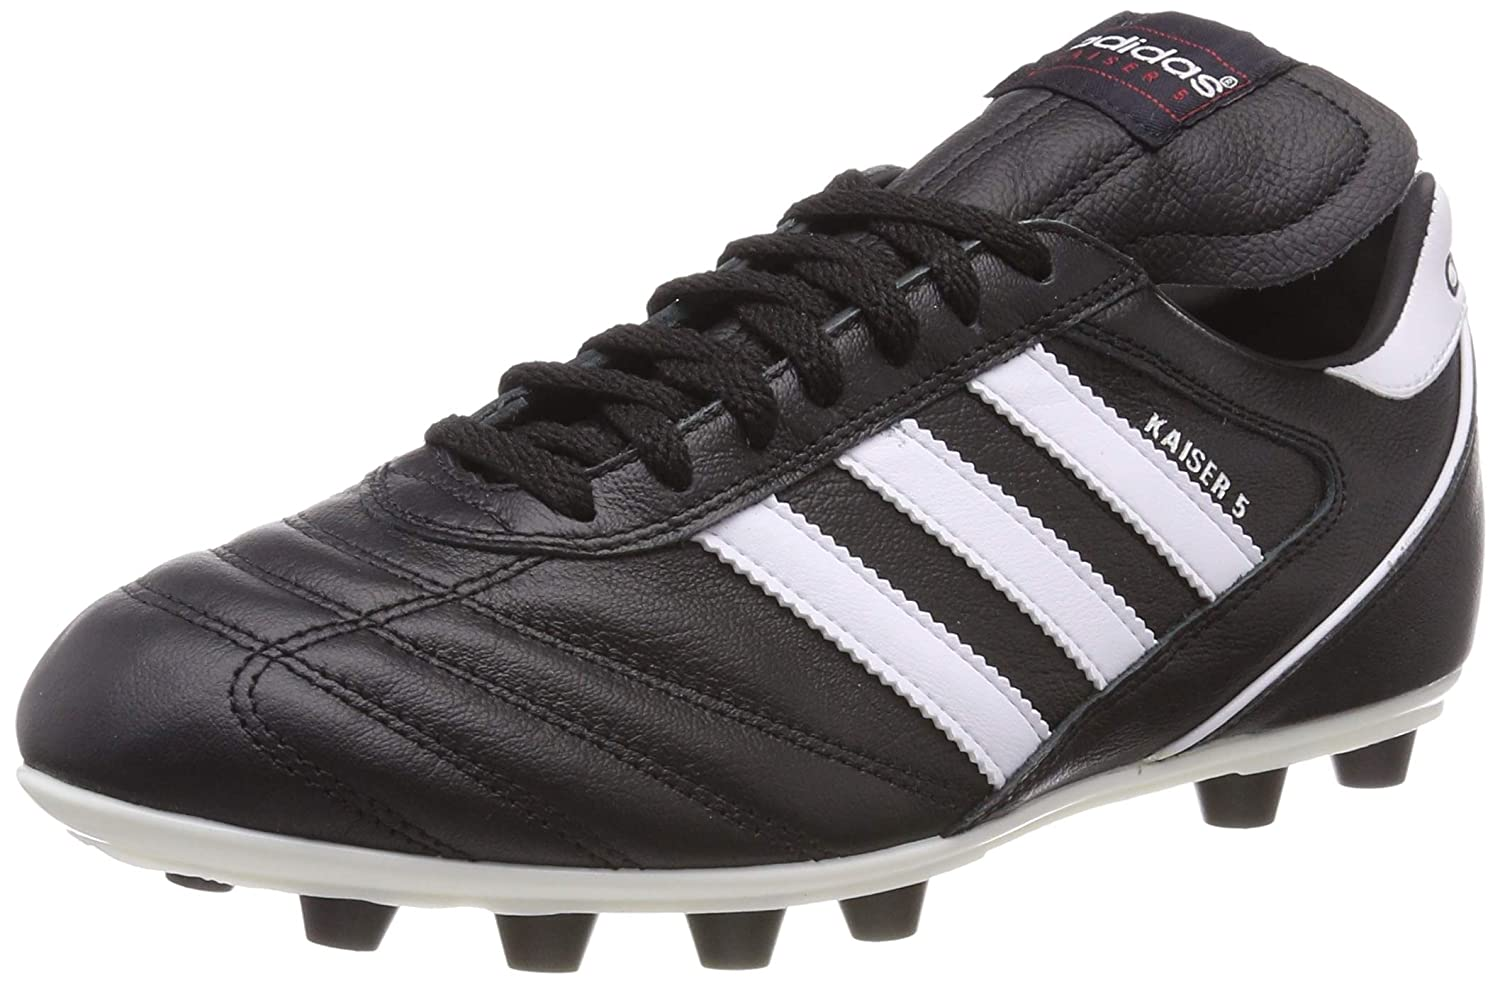 low priced 9ccf1 7137c Adidas Copa Mundial Uomo Scarpe Calcio  MainApps  Amazon.it  Scarpe e borse